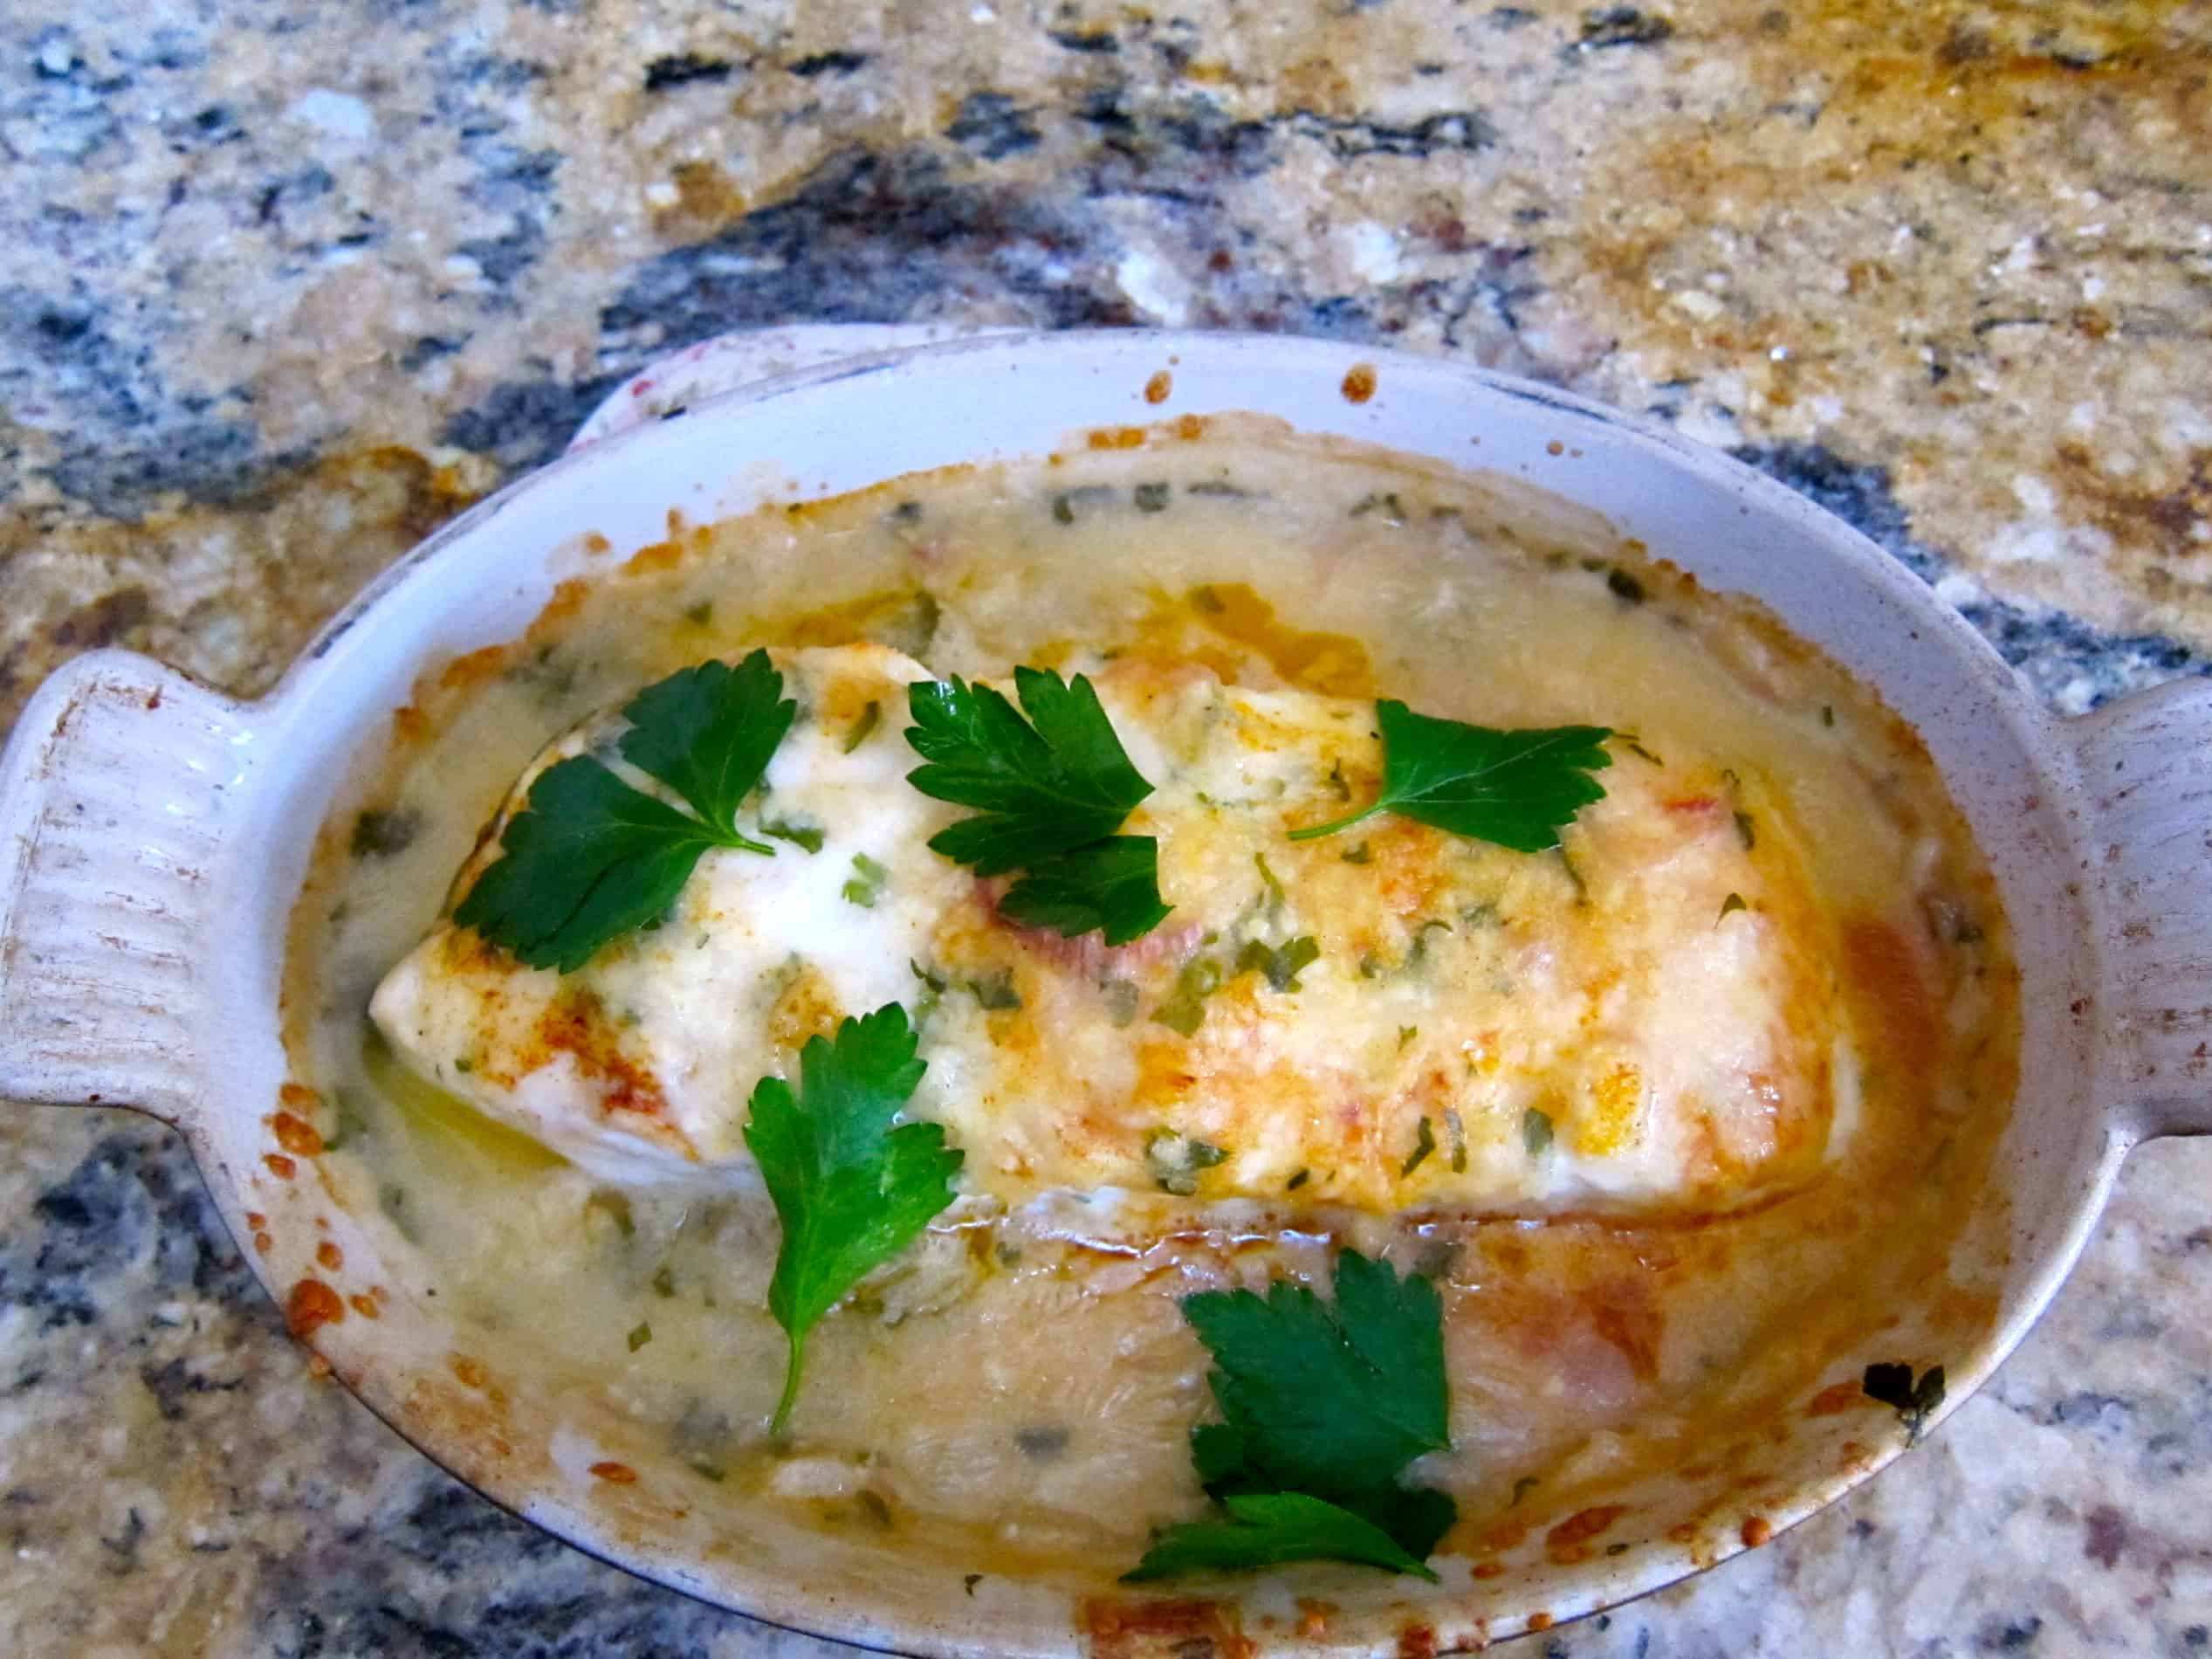 Phyllis's Baked Fish: a recipe from my mother's dear friend, Phyllis, who was a superb home cook.